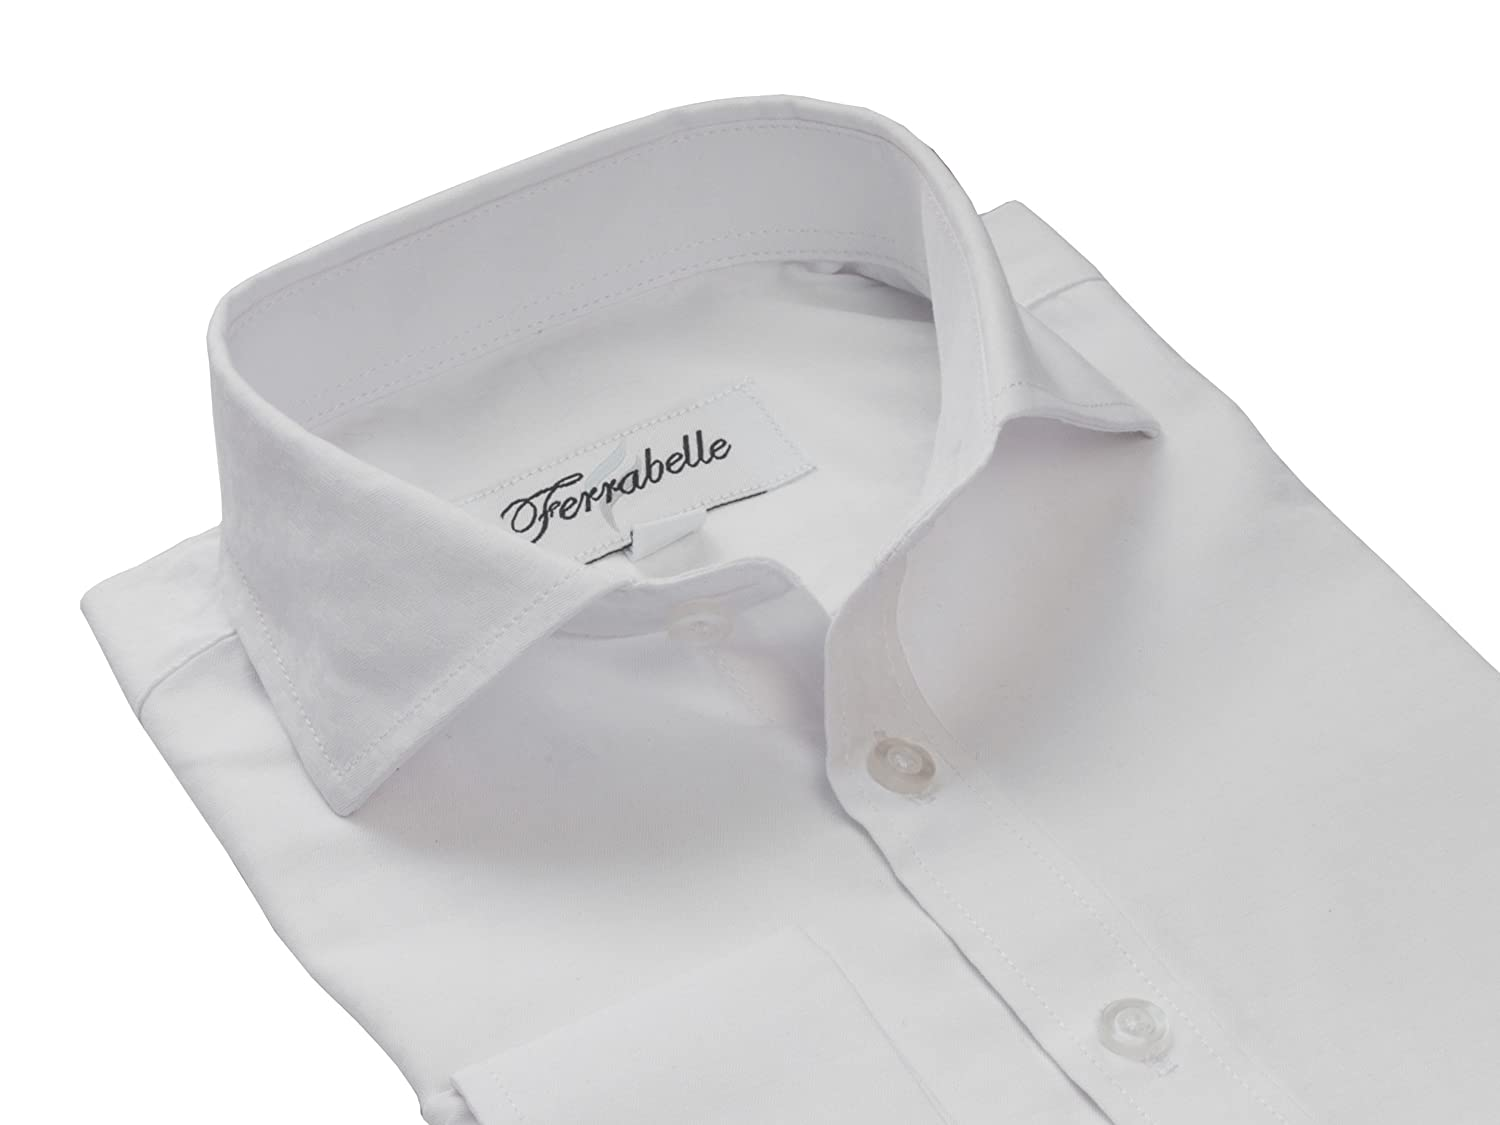 Comfortable 100/% Cotton Fashioned Spread Collar Boys Dress Shirts Long Sleeve and French Cuffs with Cufflinks Included